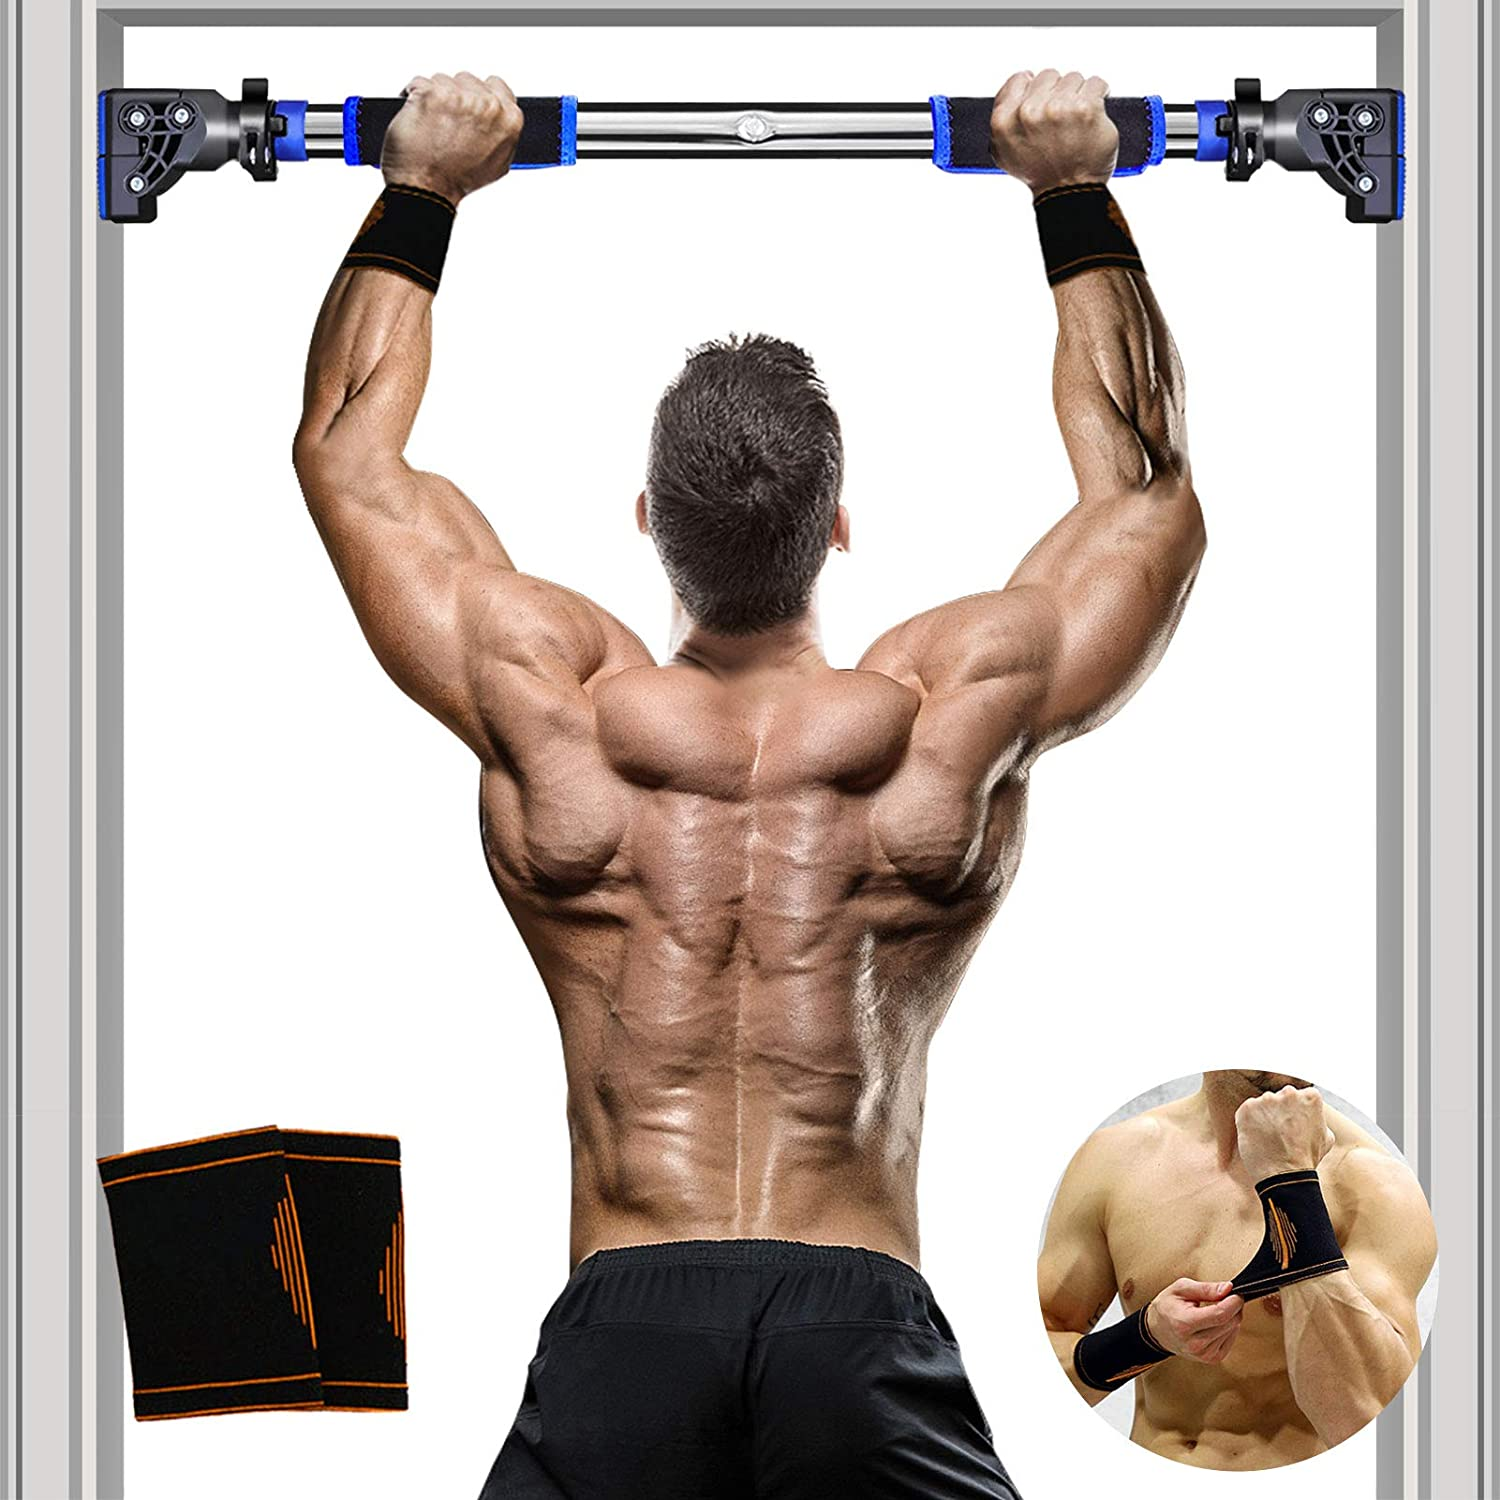 Doorway Pull Up Bar Upper Body Sit-Up Strength Body Workout Exercise Fitness Gym